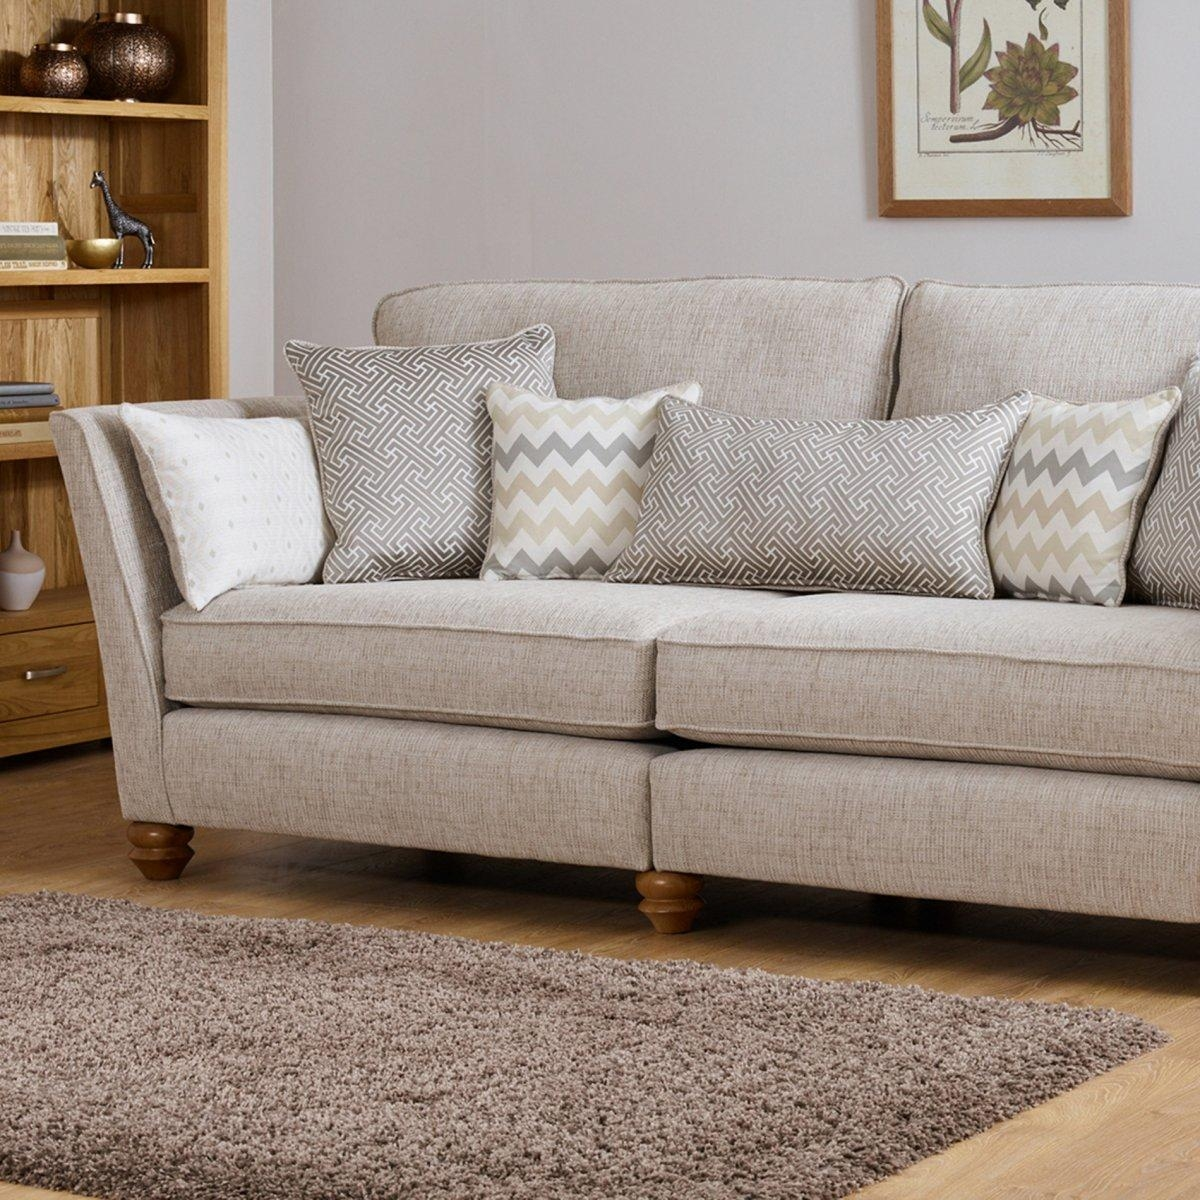 Gainsborough 4 Seater Sofa In Brown | Oak Furniture Land With Regard To Four Seat Sofas (View 19 of 20)